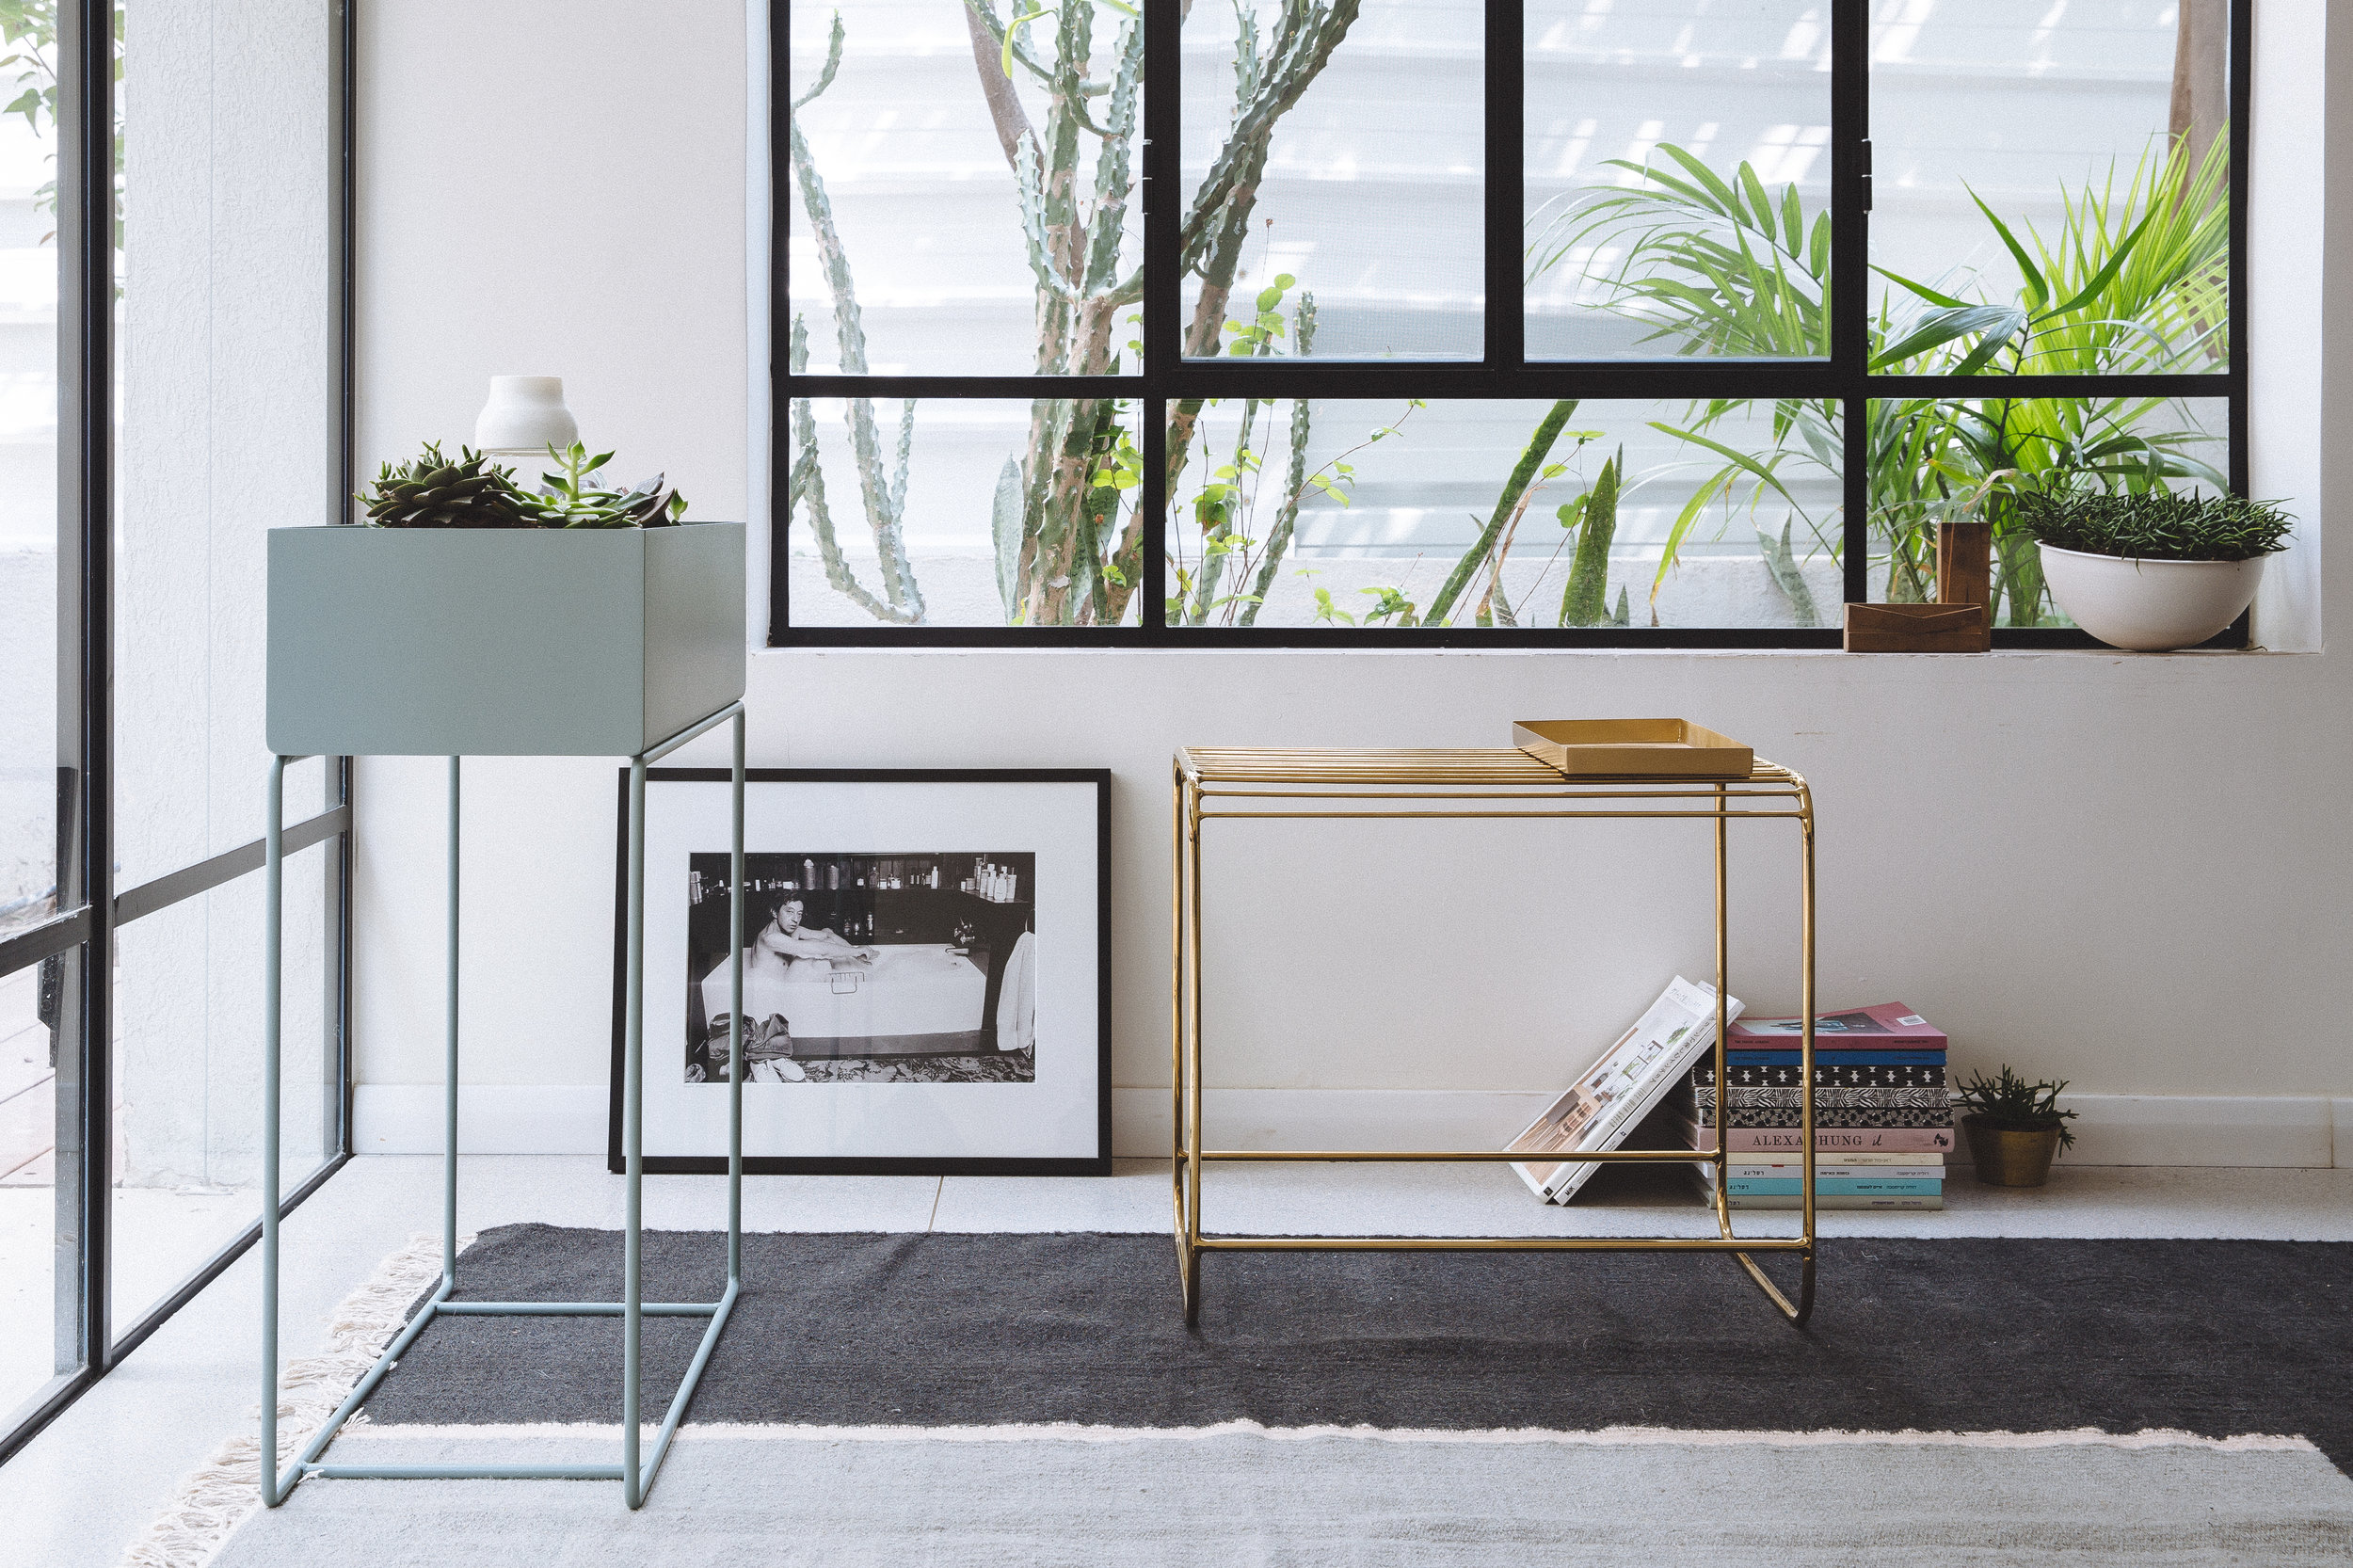 Ferm living plant box. Bloomingville brass table. Serge Gainsbourg photo. Living room design